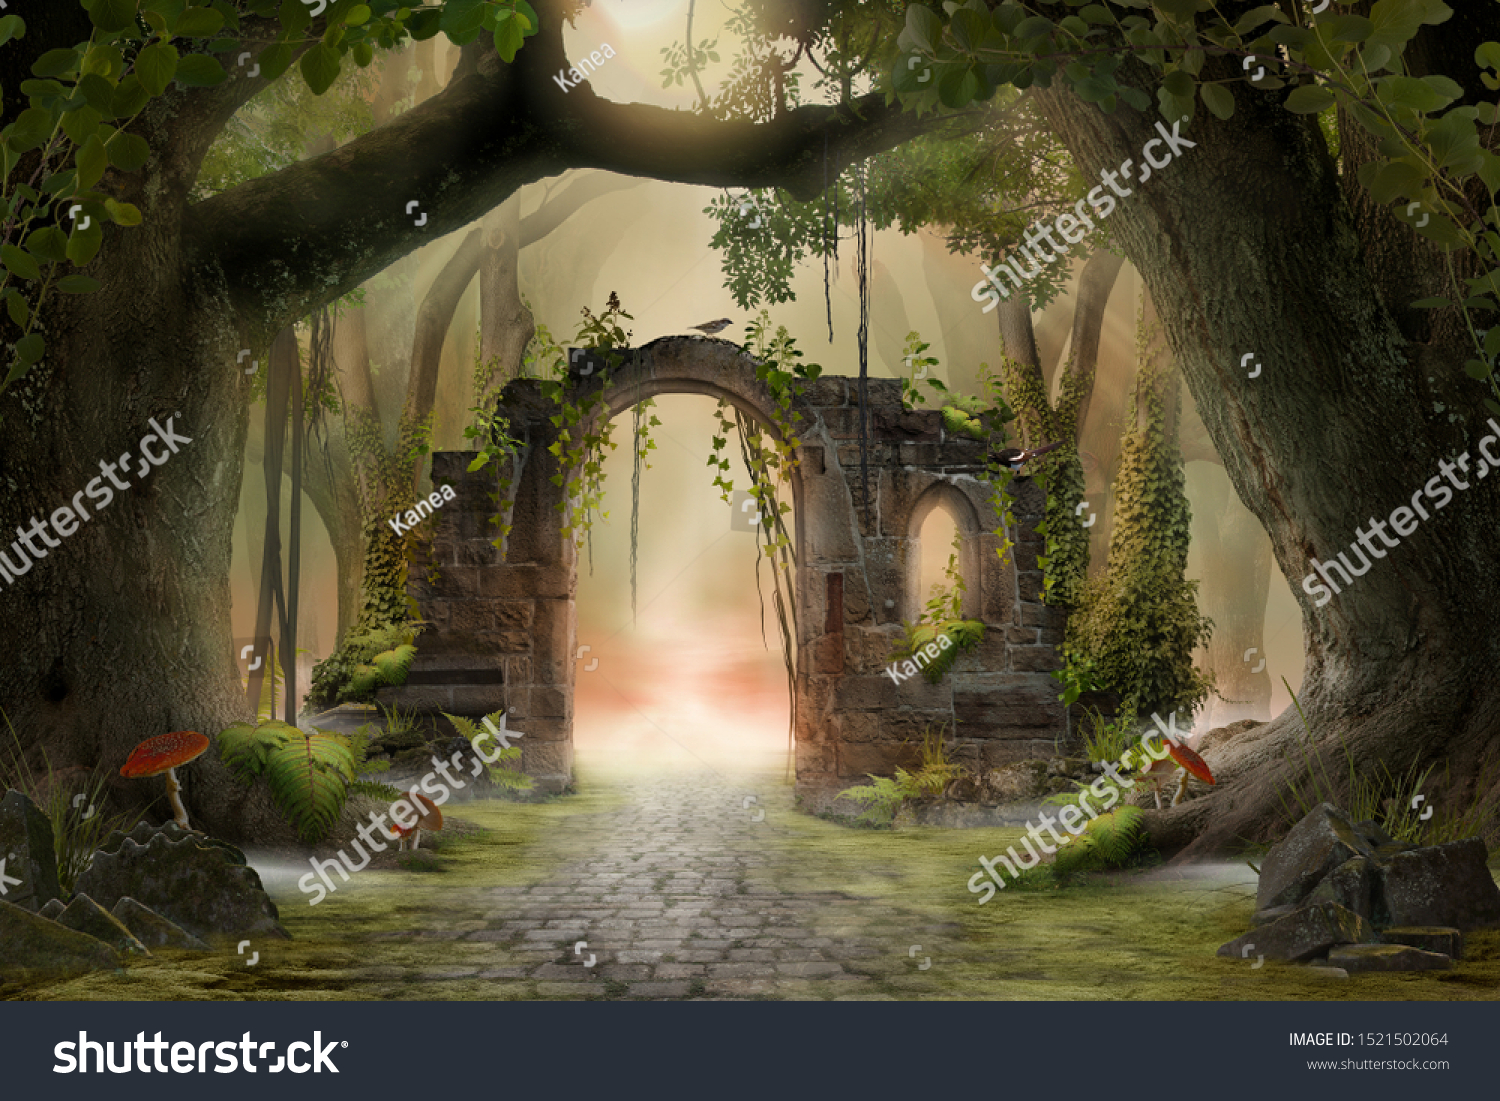 Archway in an enchanted fairy forest landscape, misty dark mood, can be used as background #1521502064